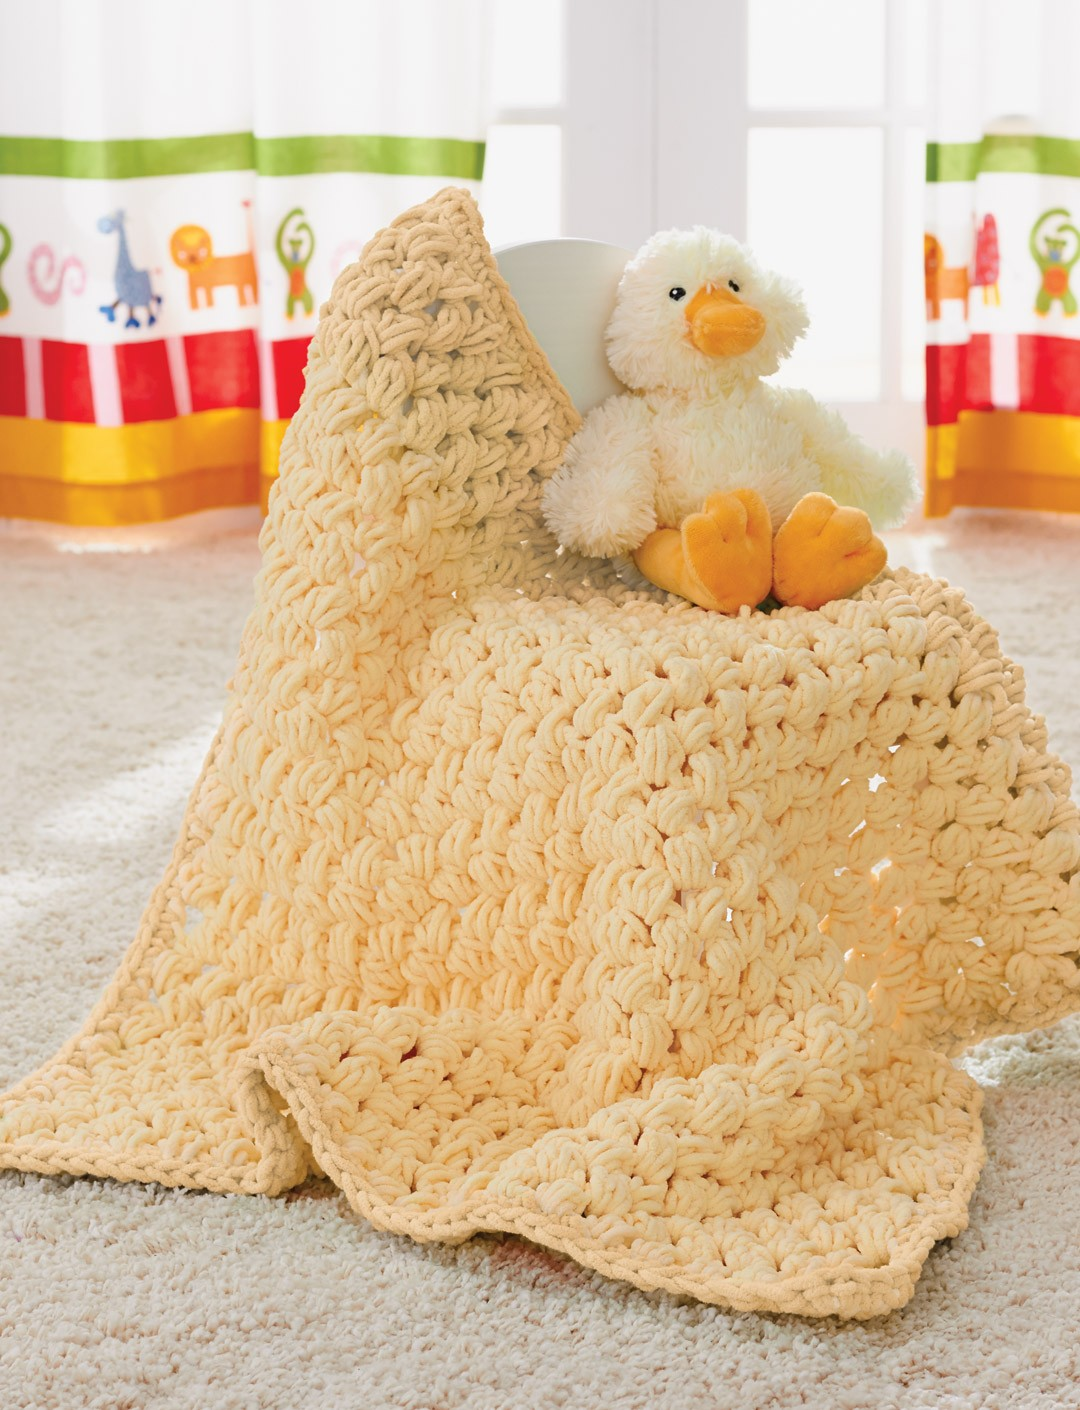 Bernat Baby Blanket Knitting Patterns : Bernat Puffy Baby Blanket, Crochet Pattern Yarnspirations